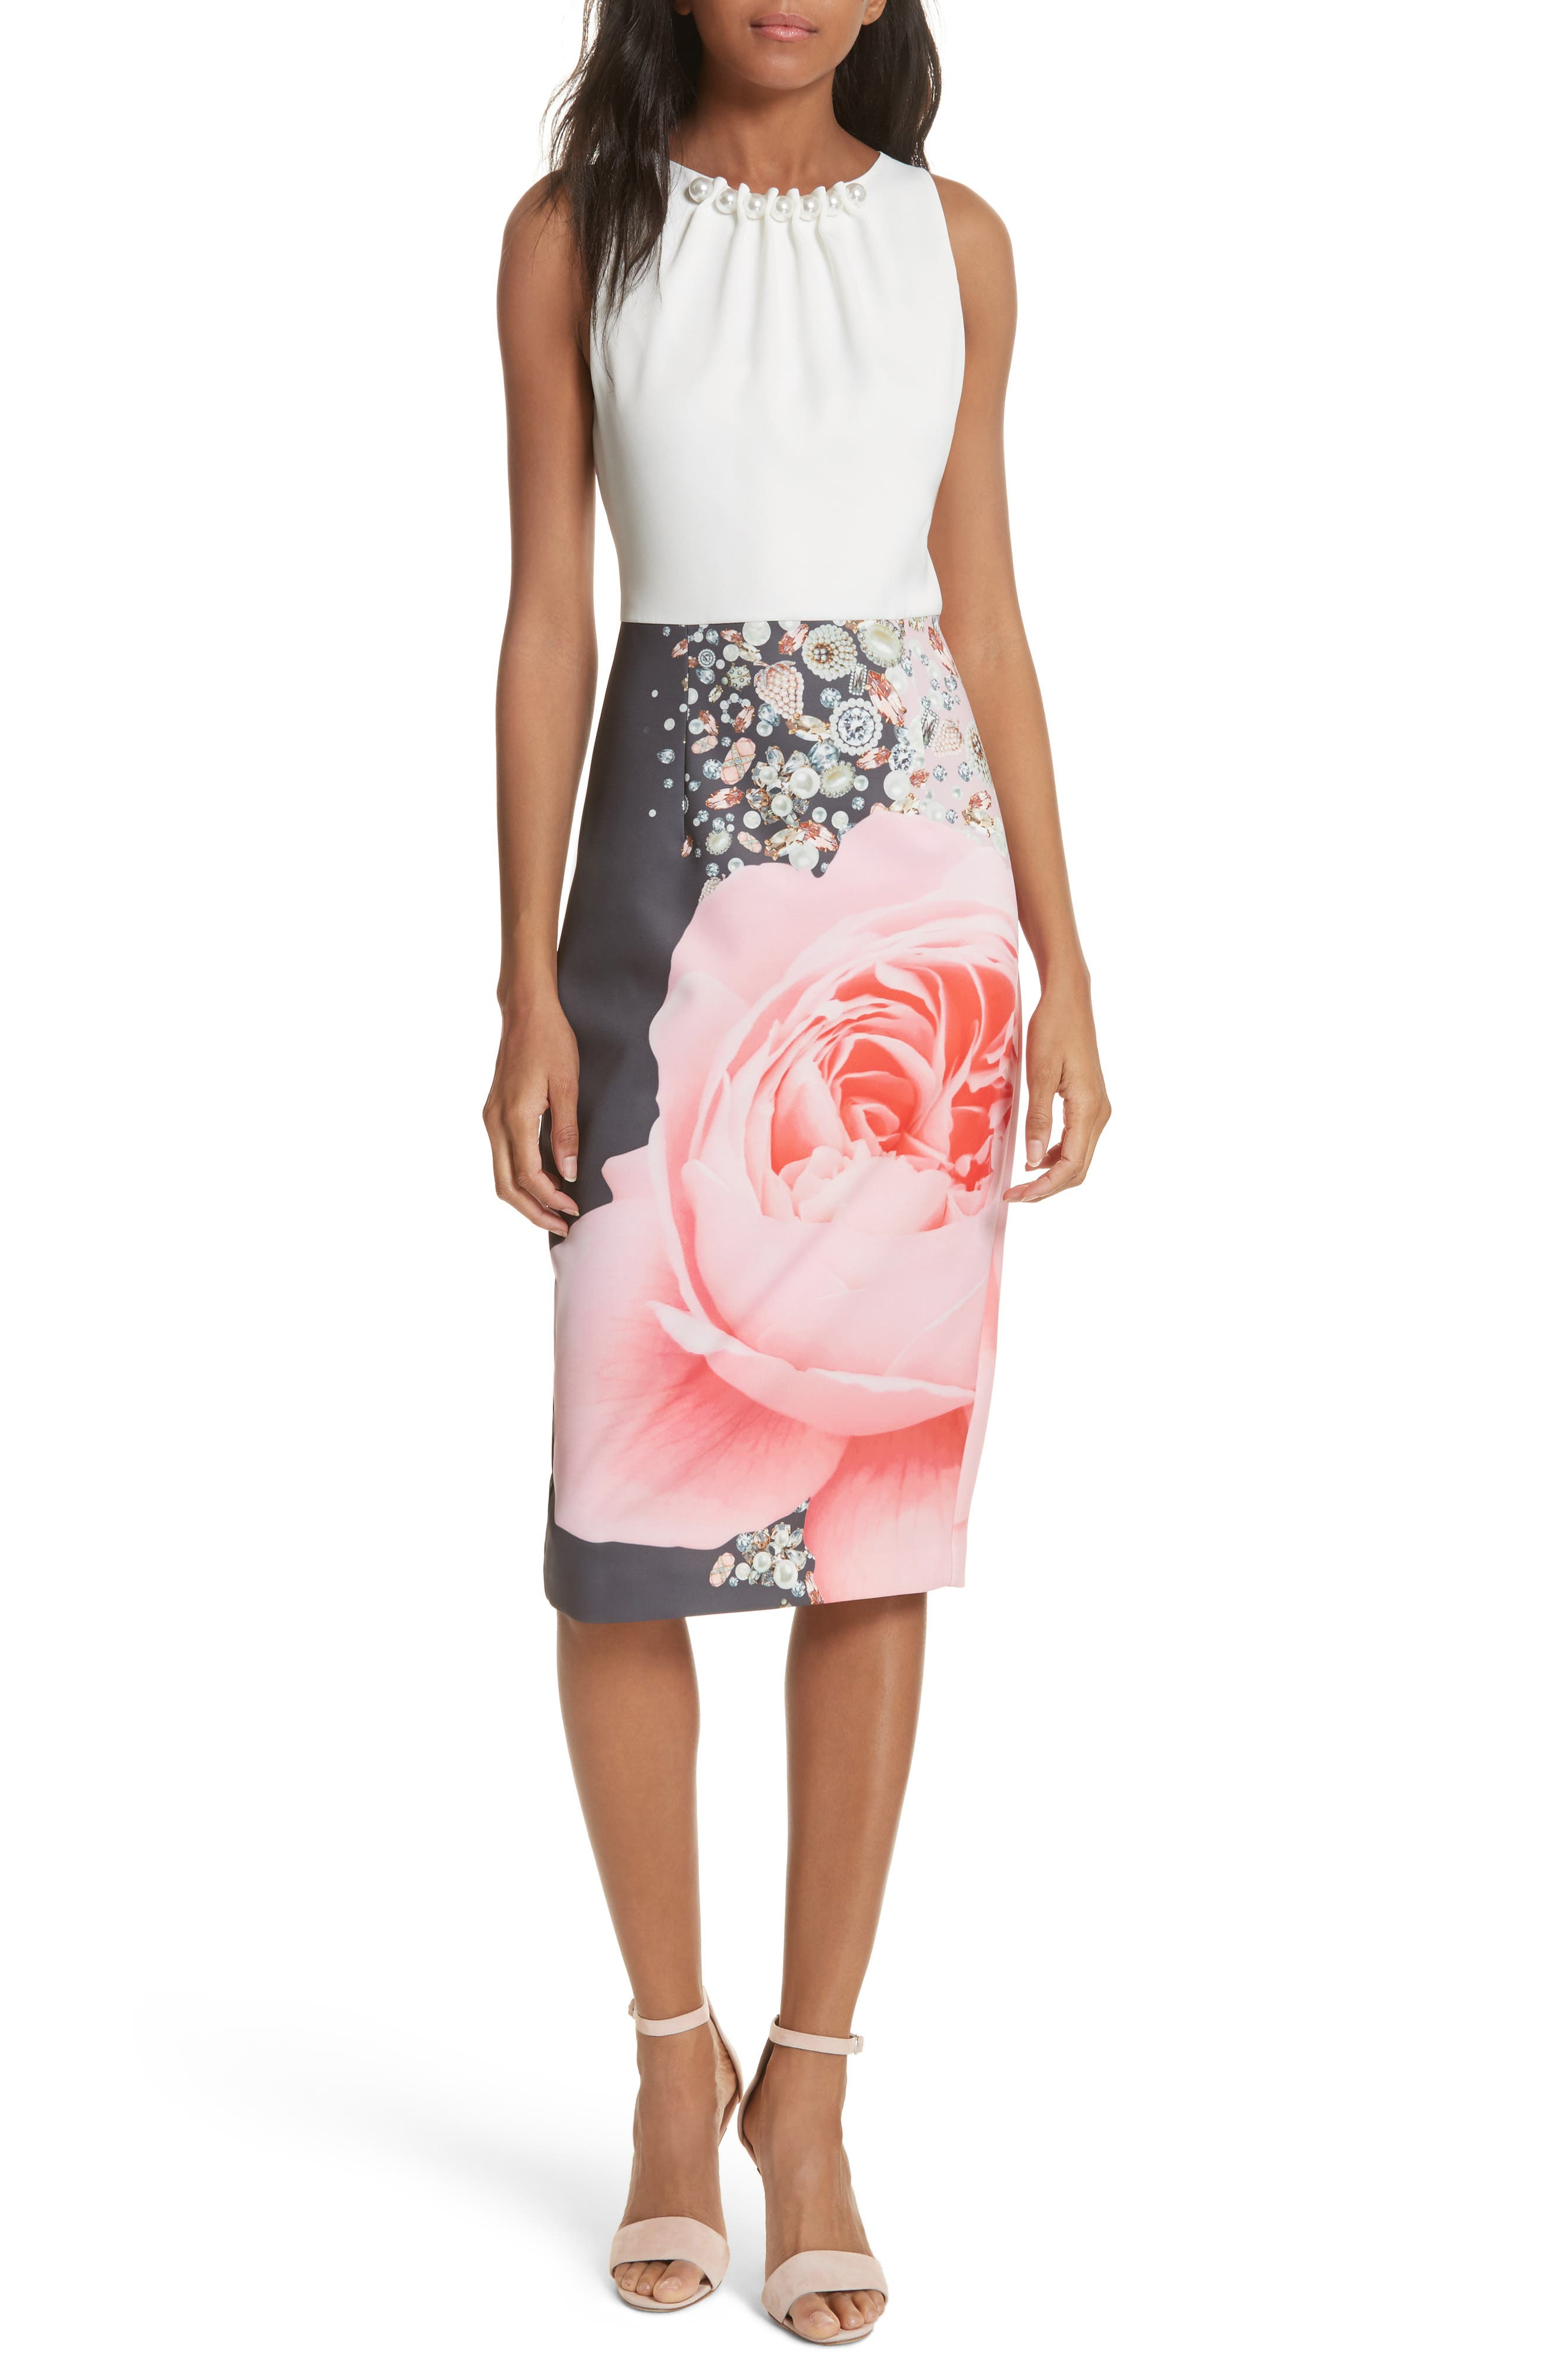 TED BAKER LONDON,                             Blenheim Palace Embellished Body-Con Dress,                             Main thumbnail 1, color,                             253